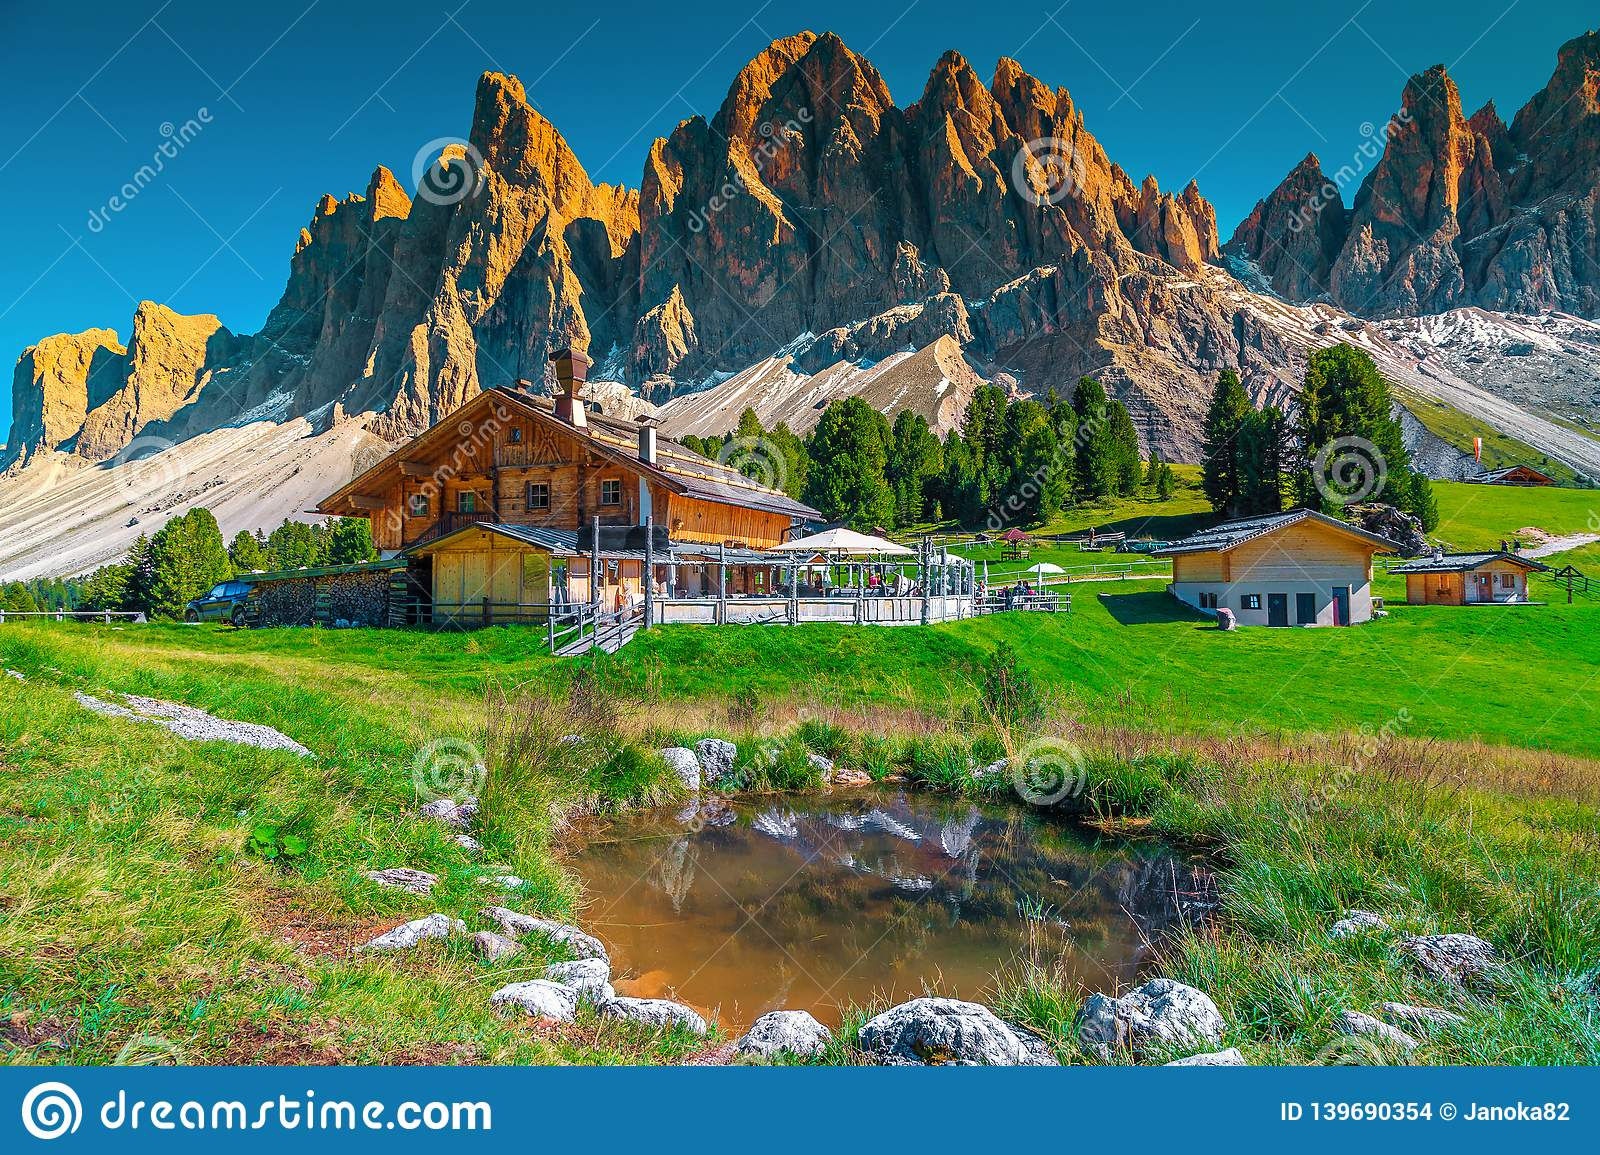 Cozy alpine chalets with mountain lake in Dolomites, Italy, Europe